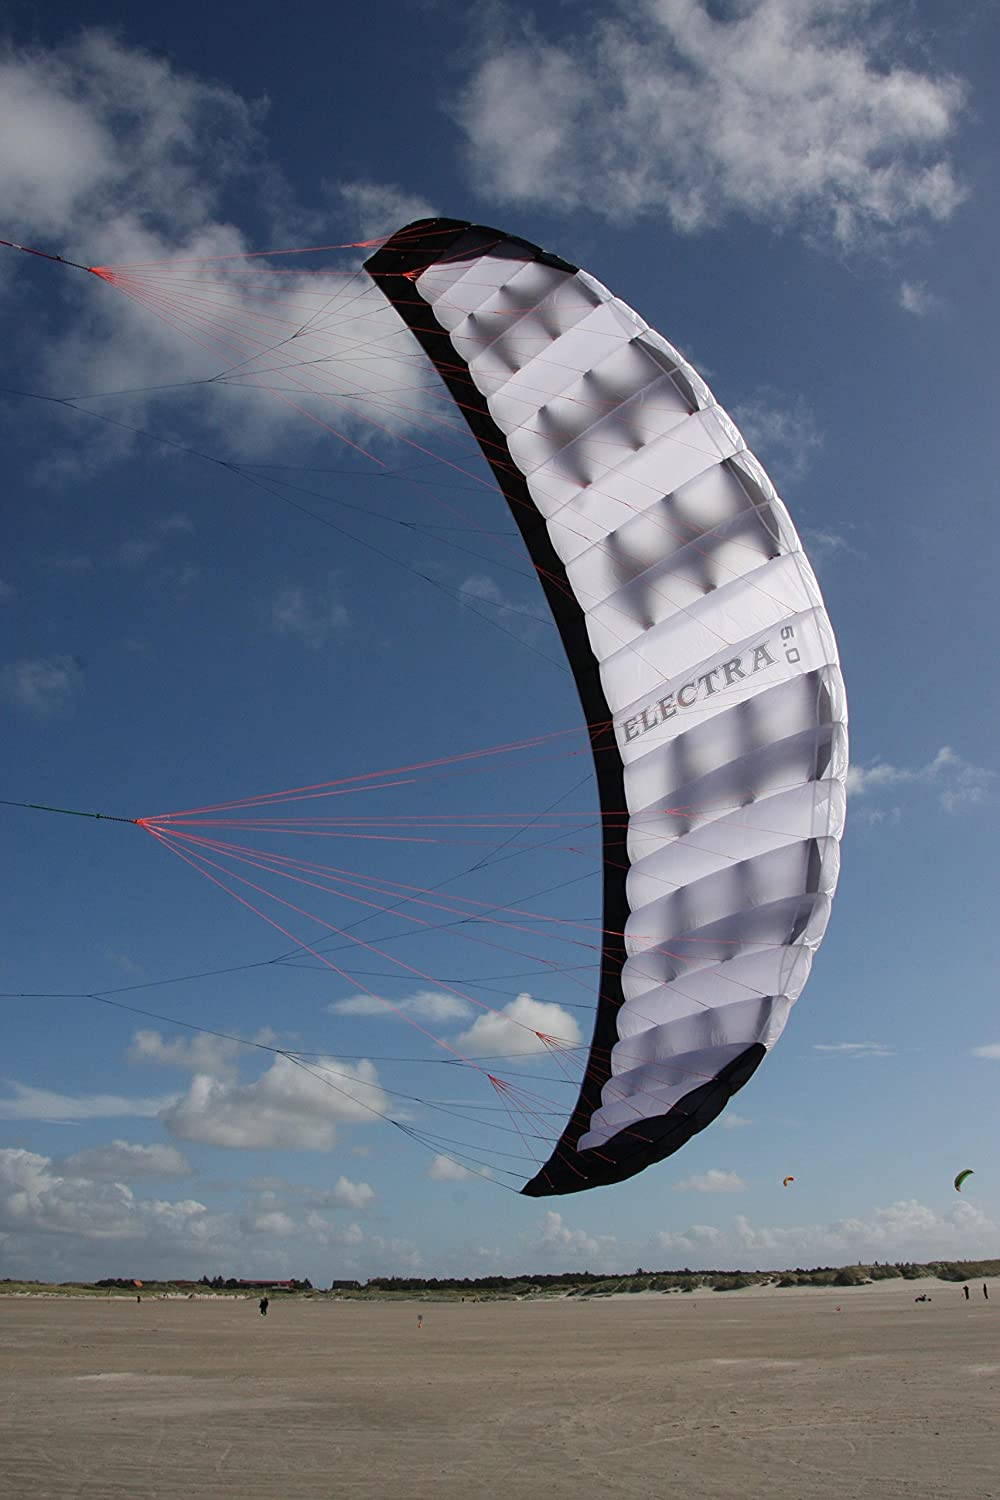 Wolkenstürmer Lenkdrachen Lenkmatte Electra 4.0 Kite Sport Freizeit Drachen